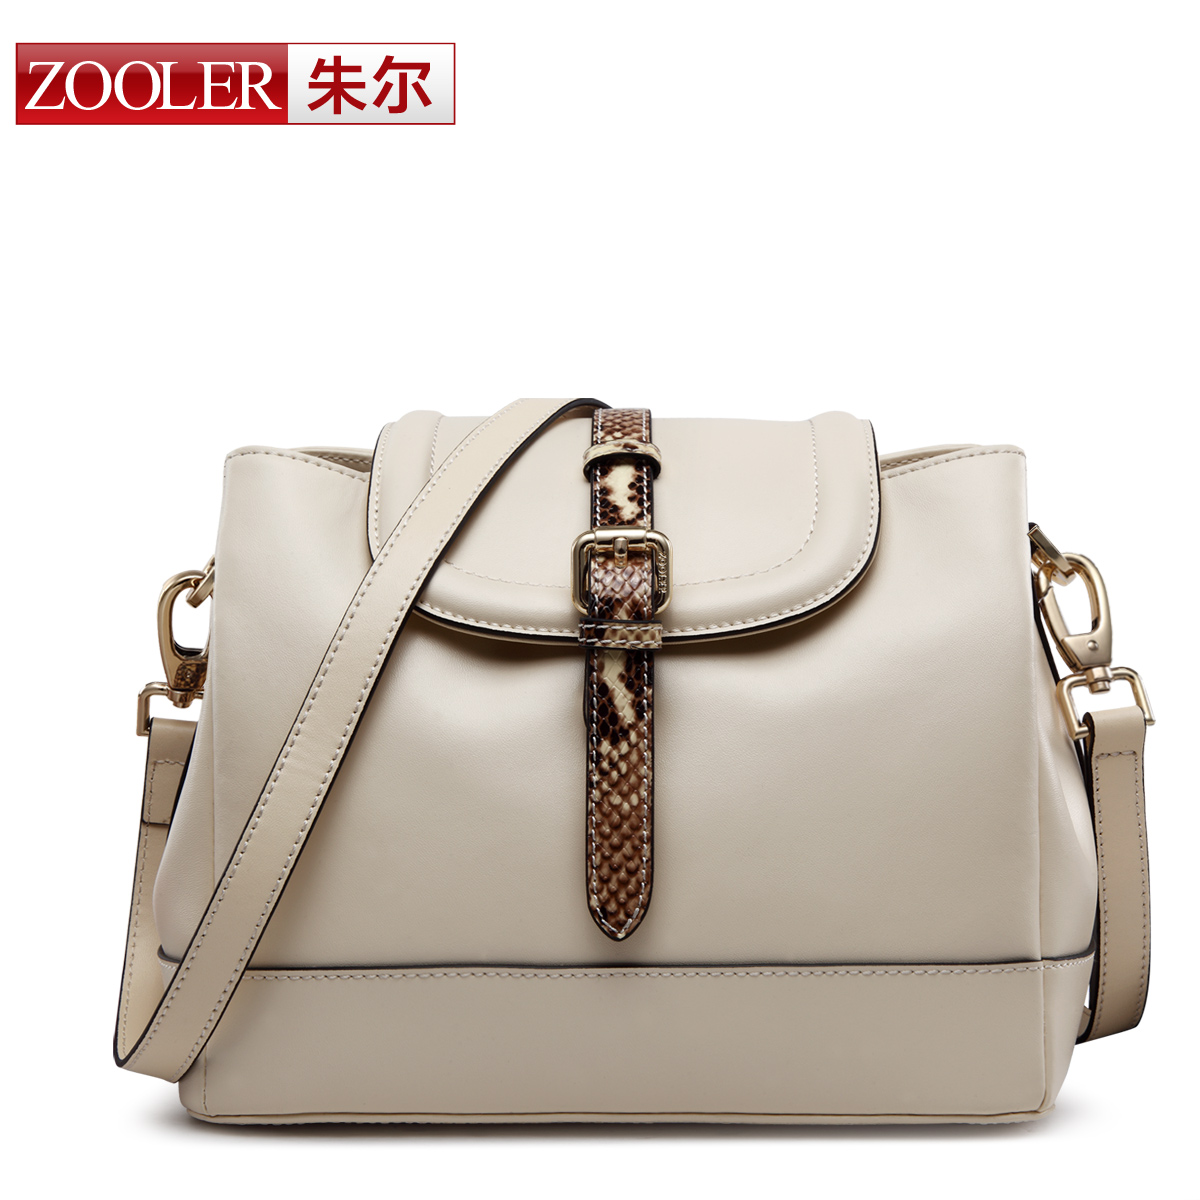 ФОТО amazing best price for you,ZOOLER BRAND Genuine Leather bag bags Handbags women Shoulder bags OL Style women bag #6081